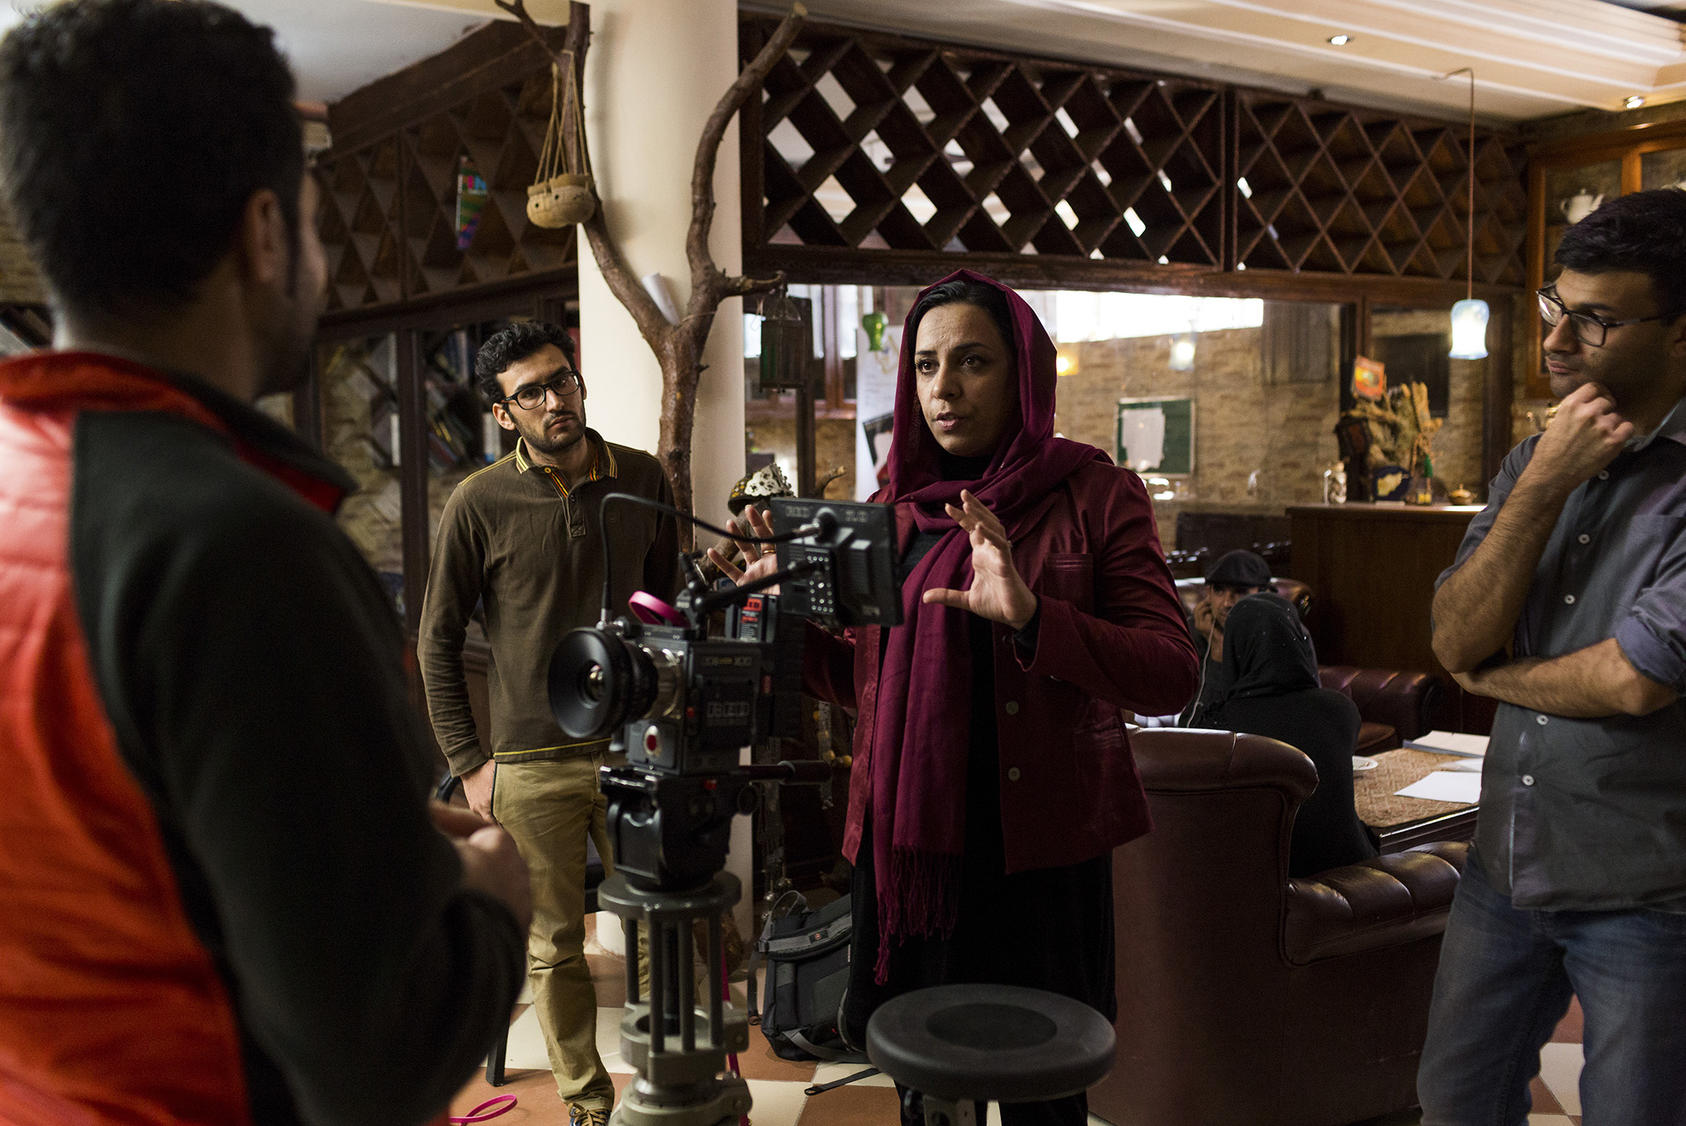 Roya Sadat, center, at a test shoot for a TV drama she directed in Kabul, Oct. 18, 2017. Sadat sold her apartment, car and jewelry to make a movie on women's rights. It's Afghanistan's selection for the Oscars now. (Jim Huylebroek/The New York Times)